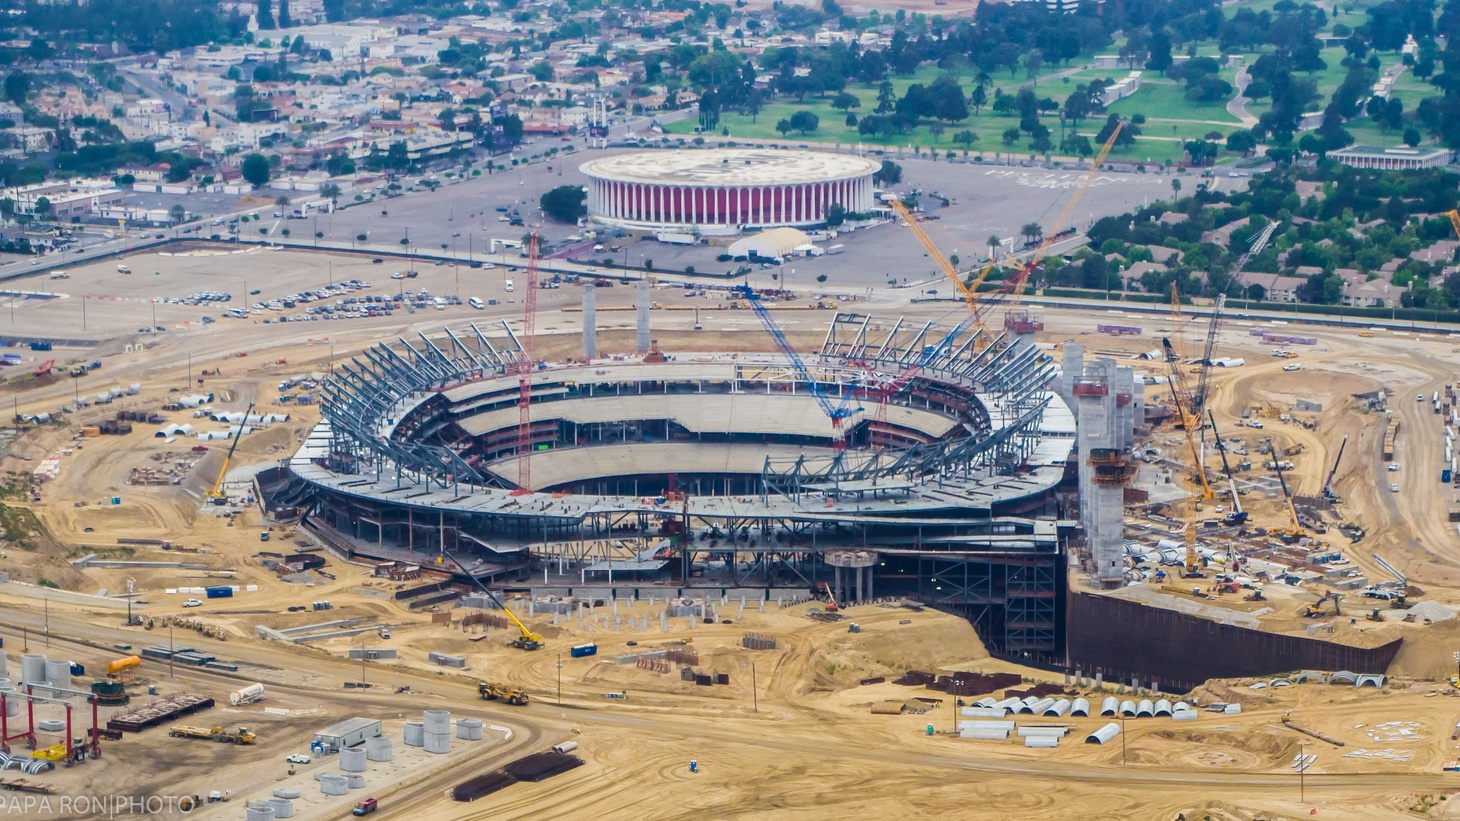 A new stadium under construction in Inglewood. June 2018.